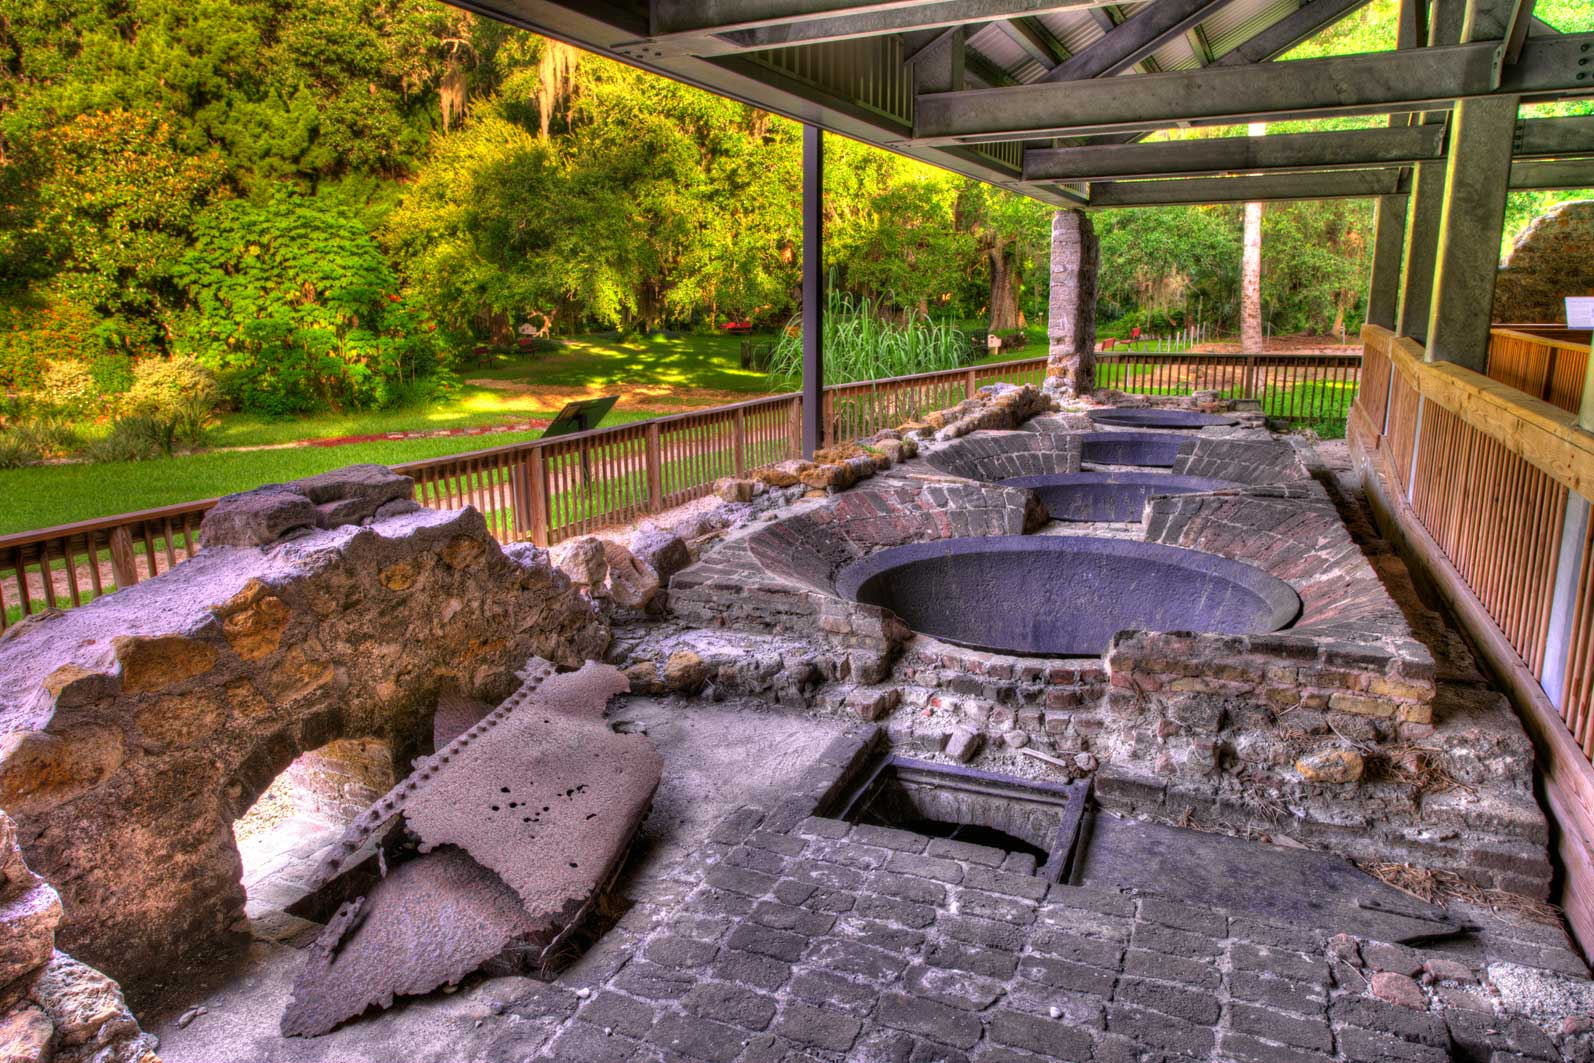 Sugar mill ruins abound in the Daytona Beach area and offer a glimpse into the history of early settlers.